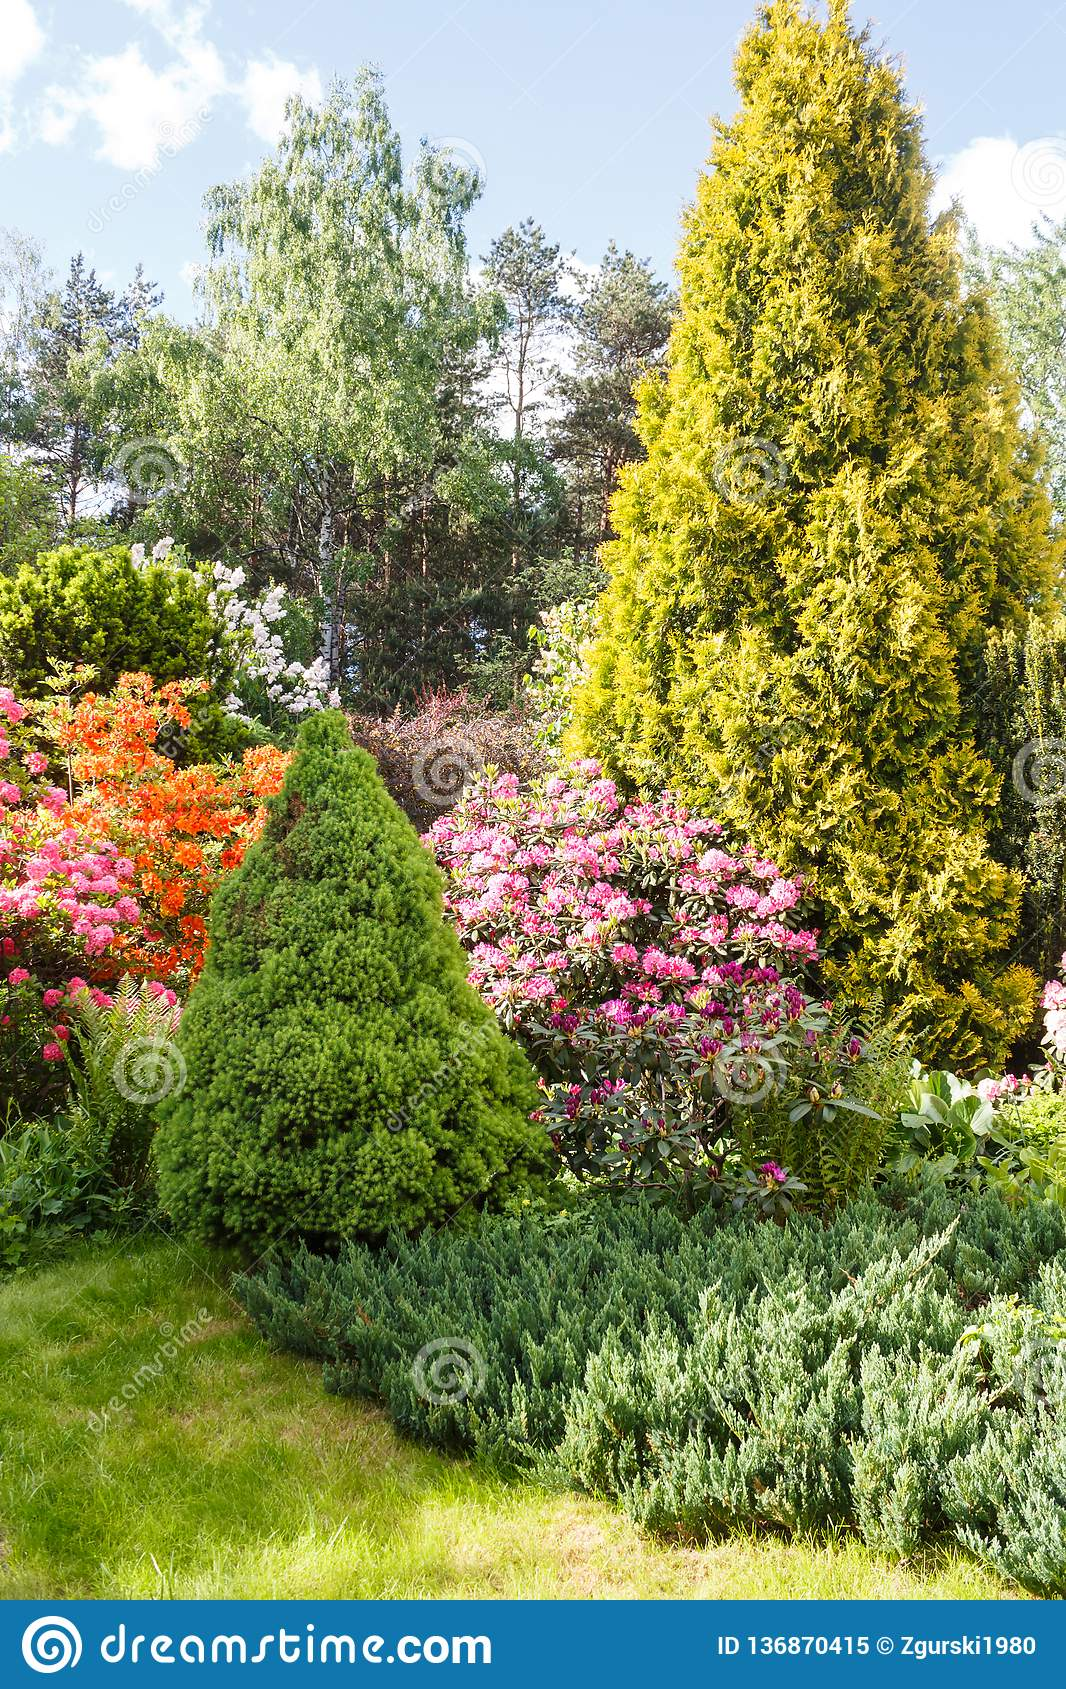 Decorative Trees Shrubs And Flowers In The Garden Spruce